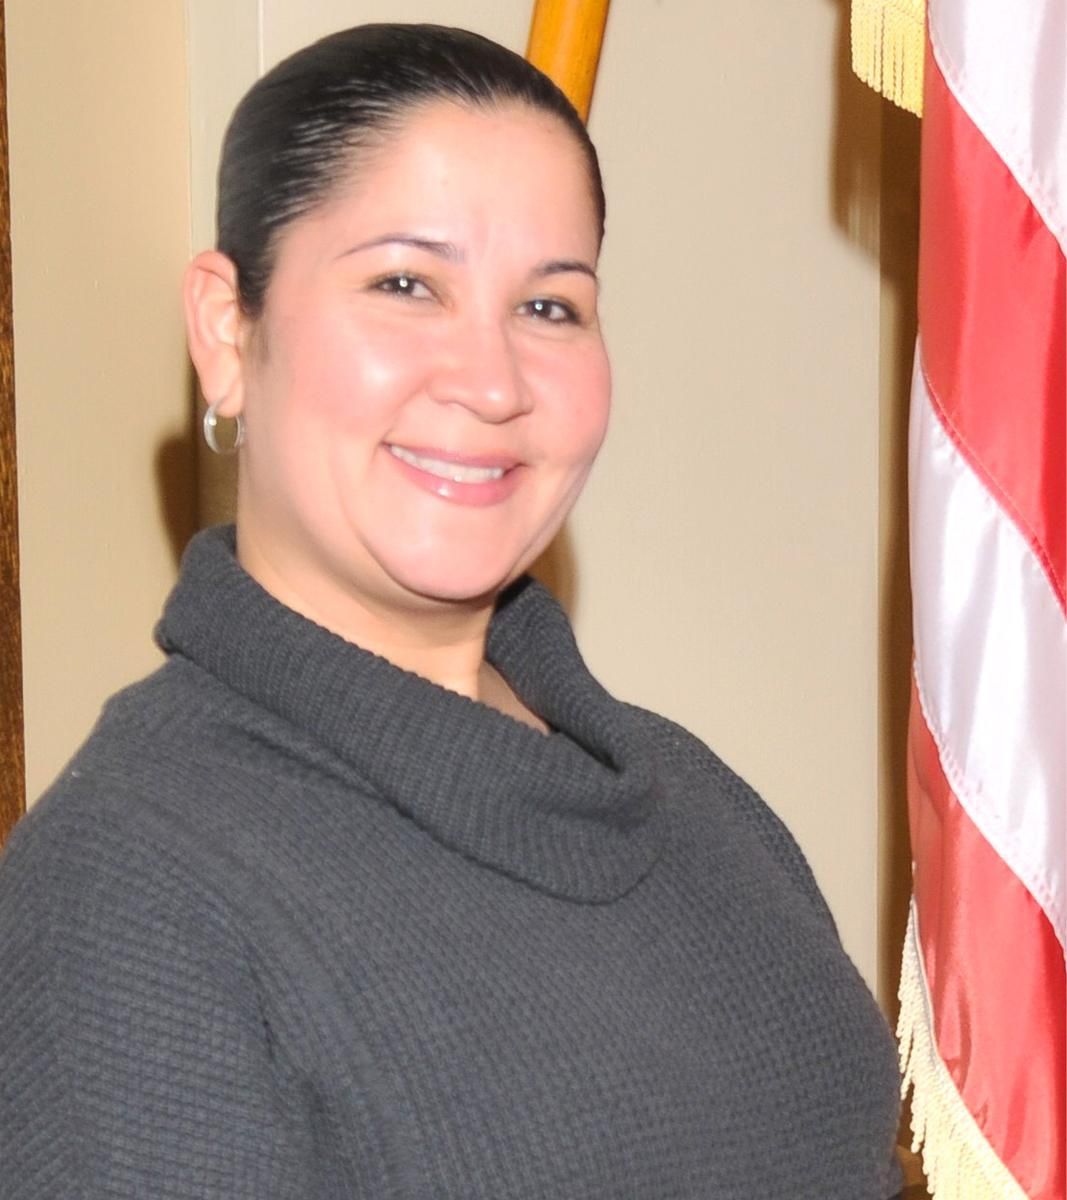 Portrait photo of Jeanette Velez, smiling wide, standing next to an American flag